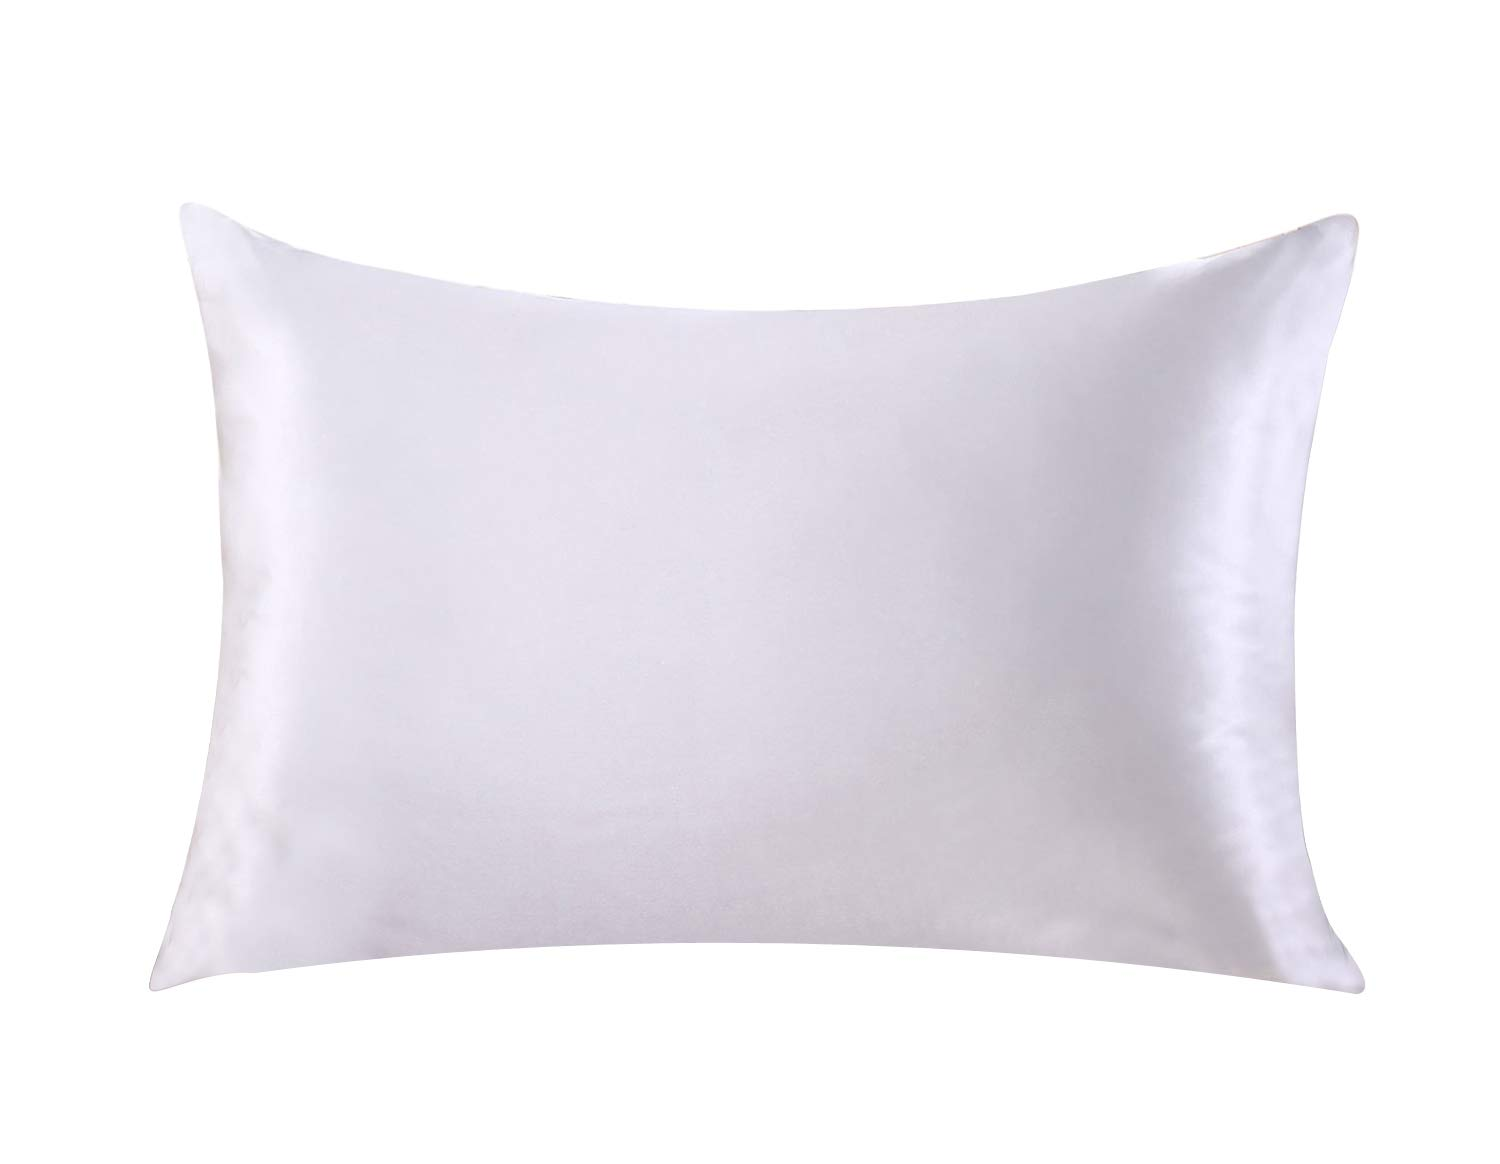 Silk Pillow Case for Hair & Facial Skin to prevent wrinkles